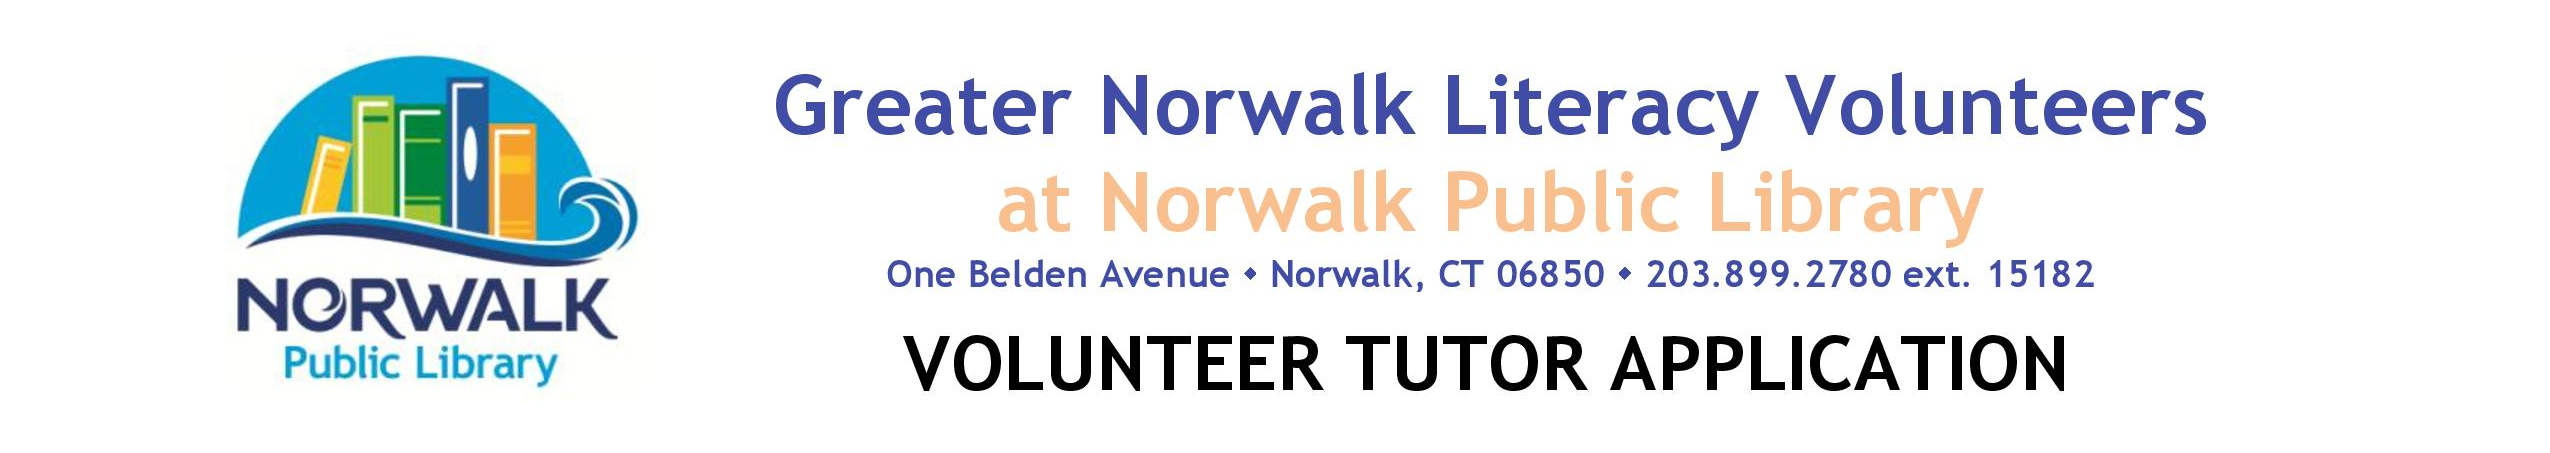 Volunteer Tutor Application banner.jpg